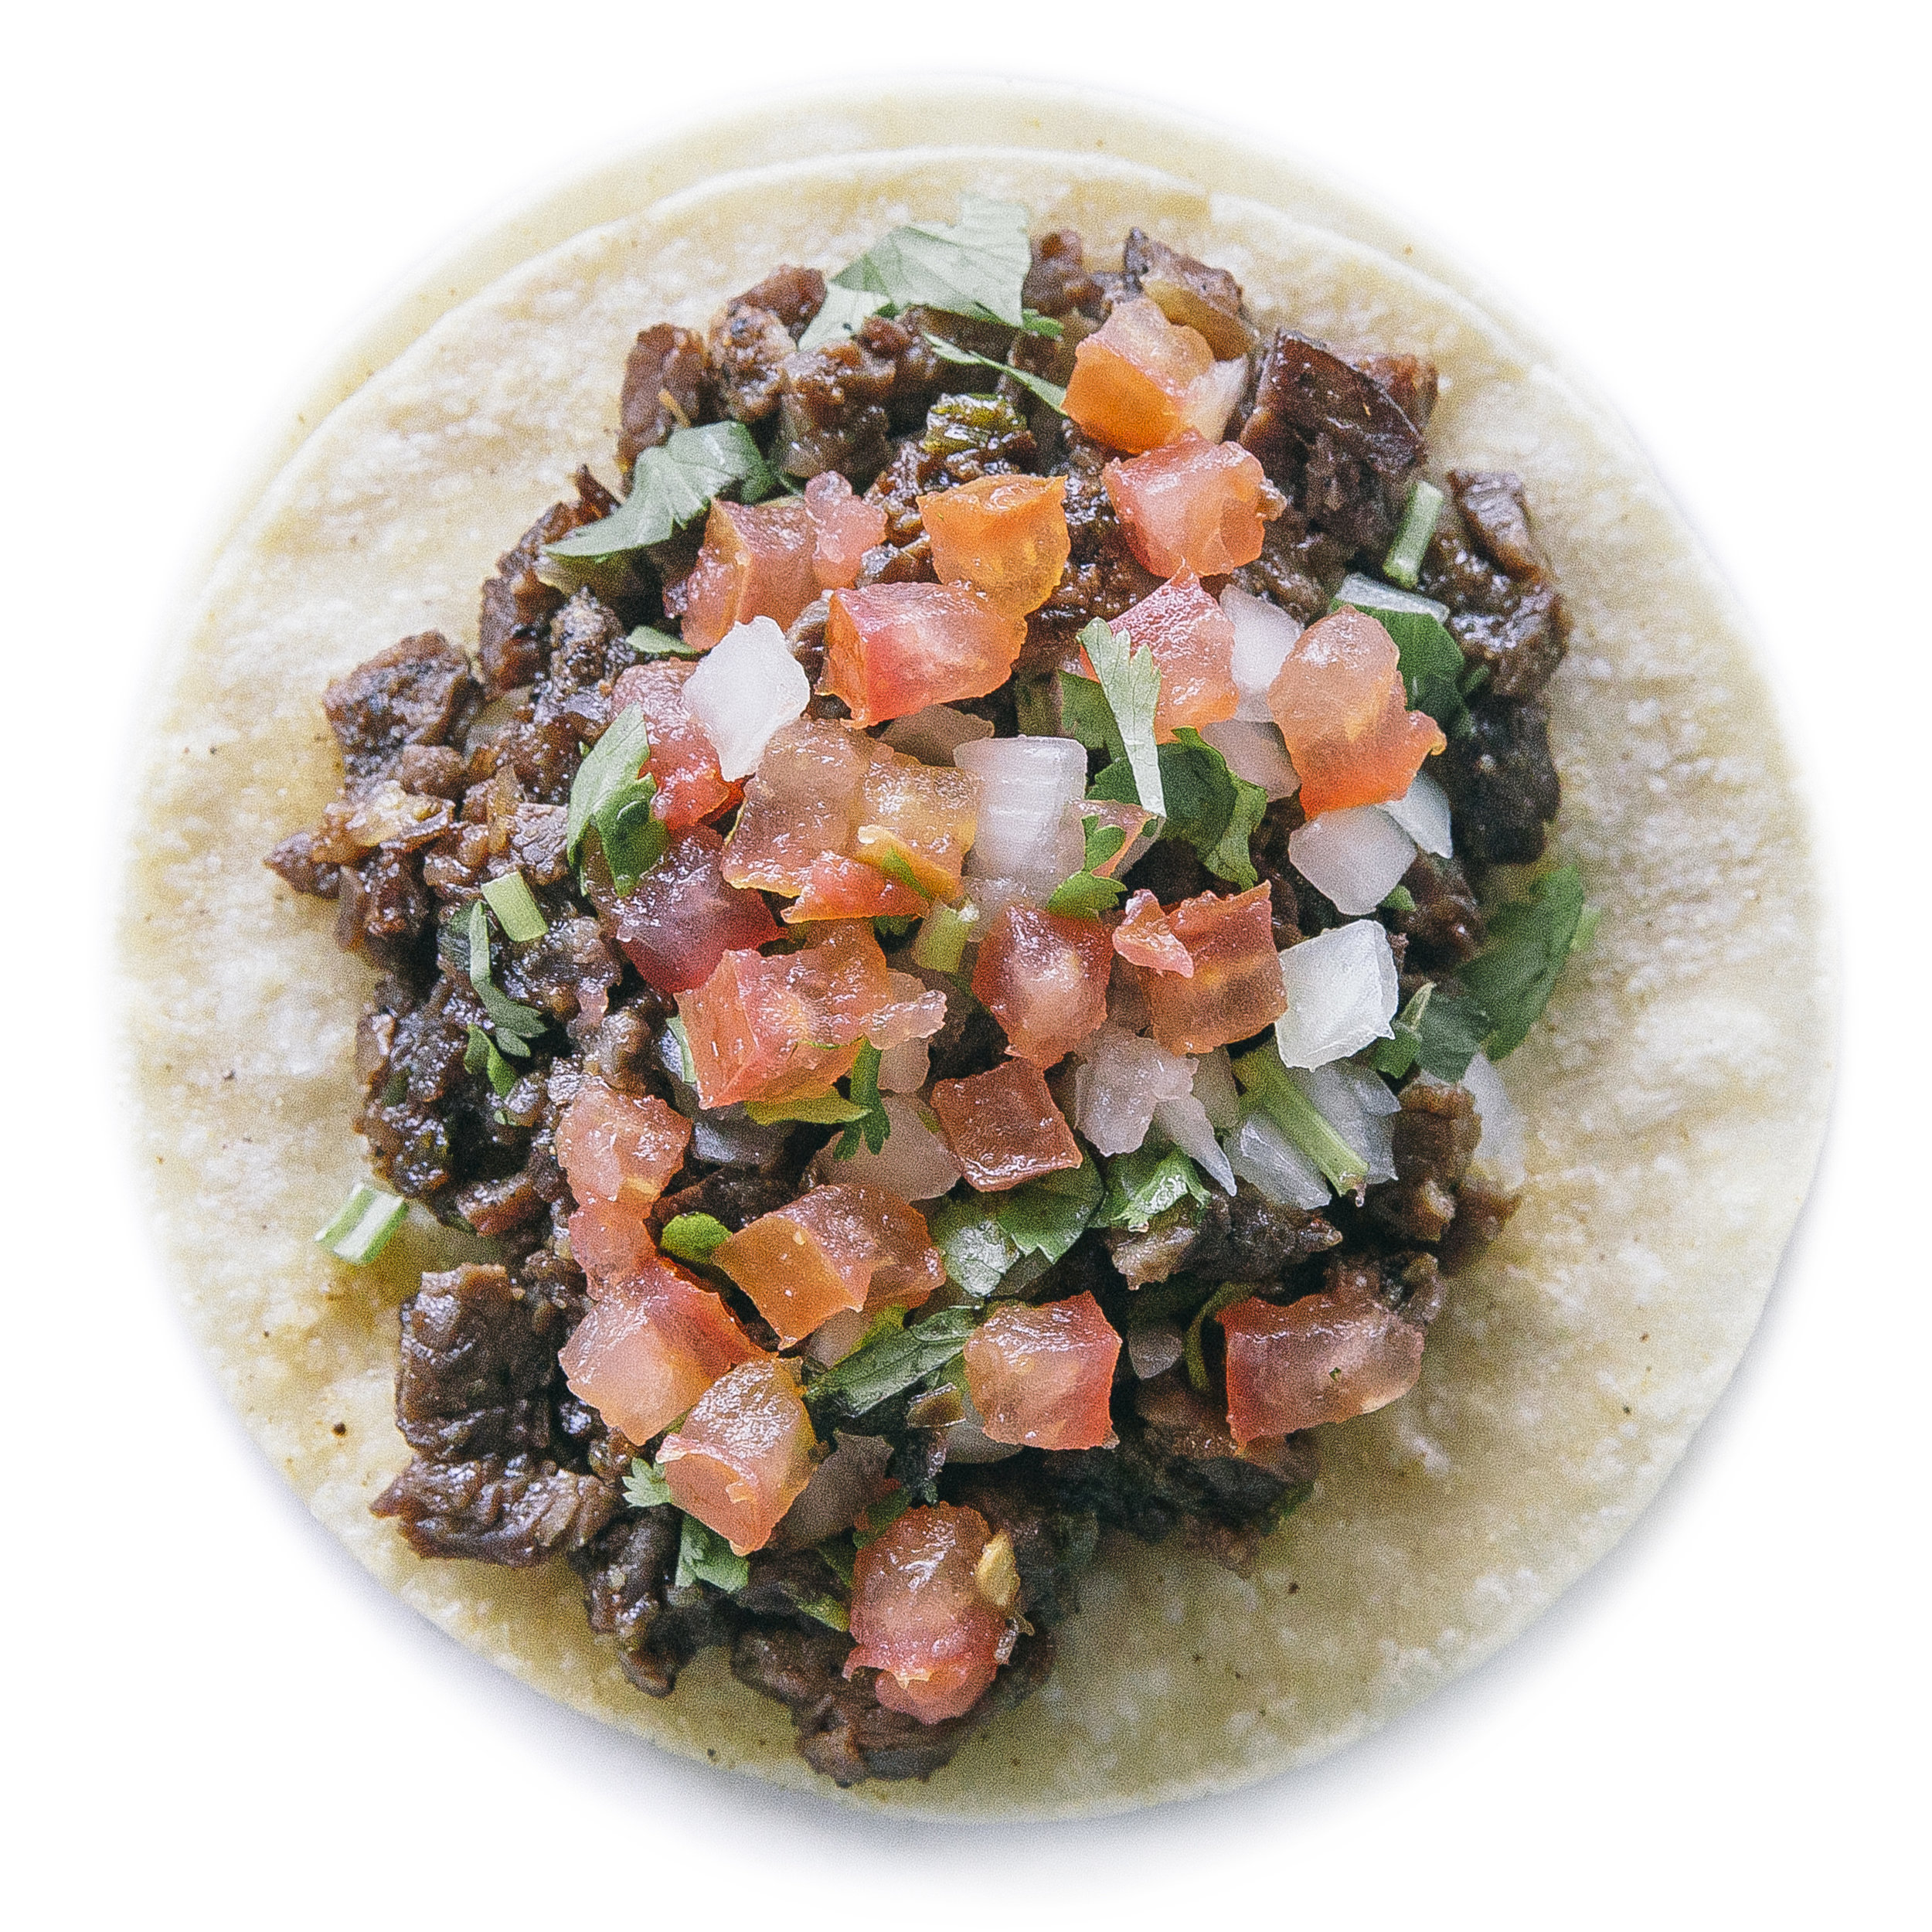 OMG STEAK TACO - $3.50SWEET & SAVORY STEAK & SCALLIONS. TOPPED WITH DICED TOMATOES, ONIONS & CILANTRO